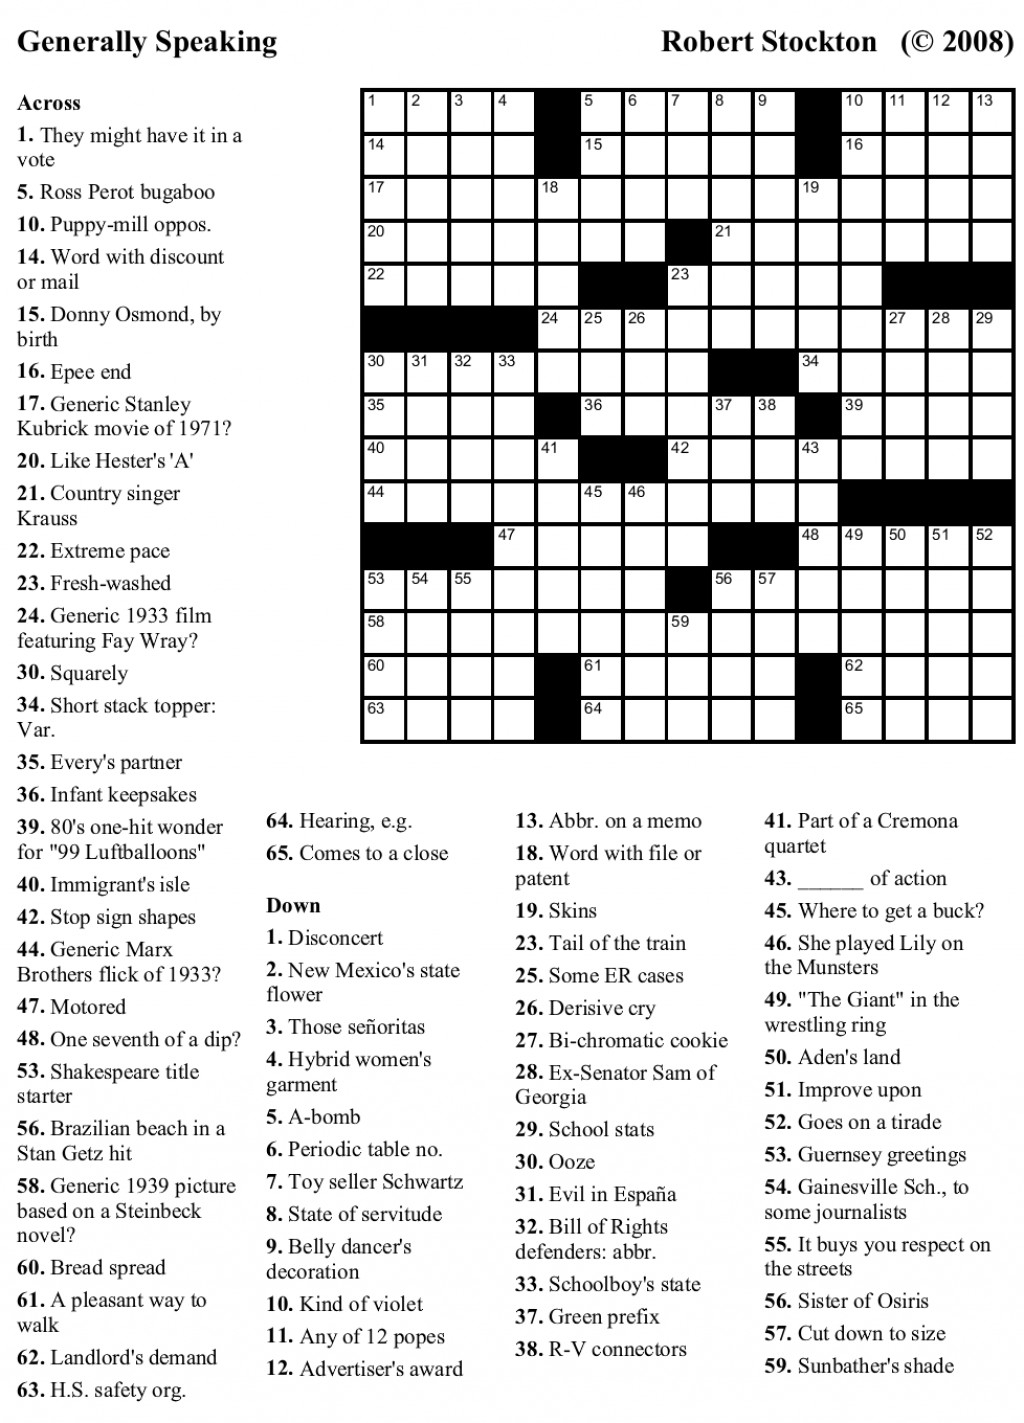 Crossword Puzzles Challenging Printable Crosswords Generallyspeaking - Free Printable Crossword Puzzles Medium Difficulty